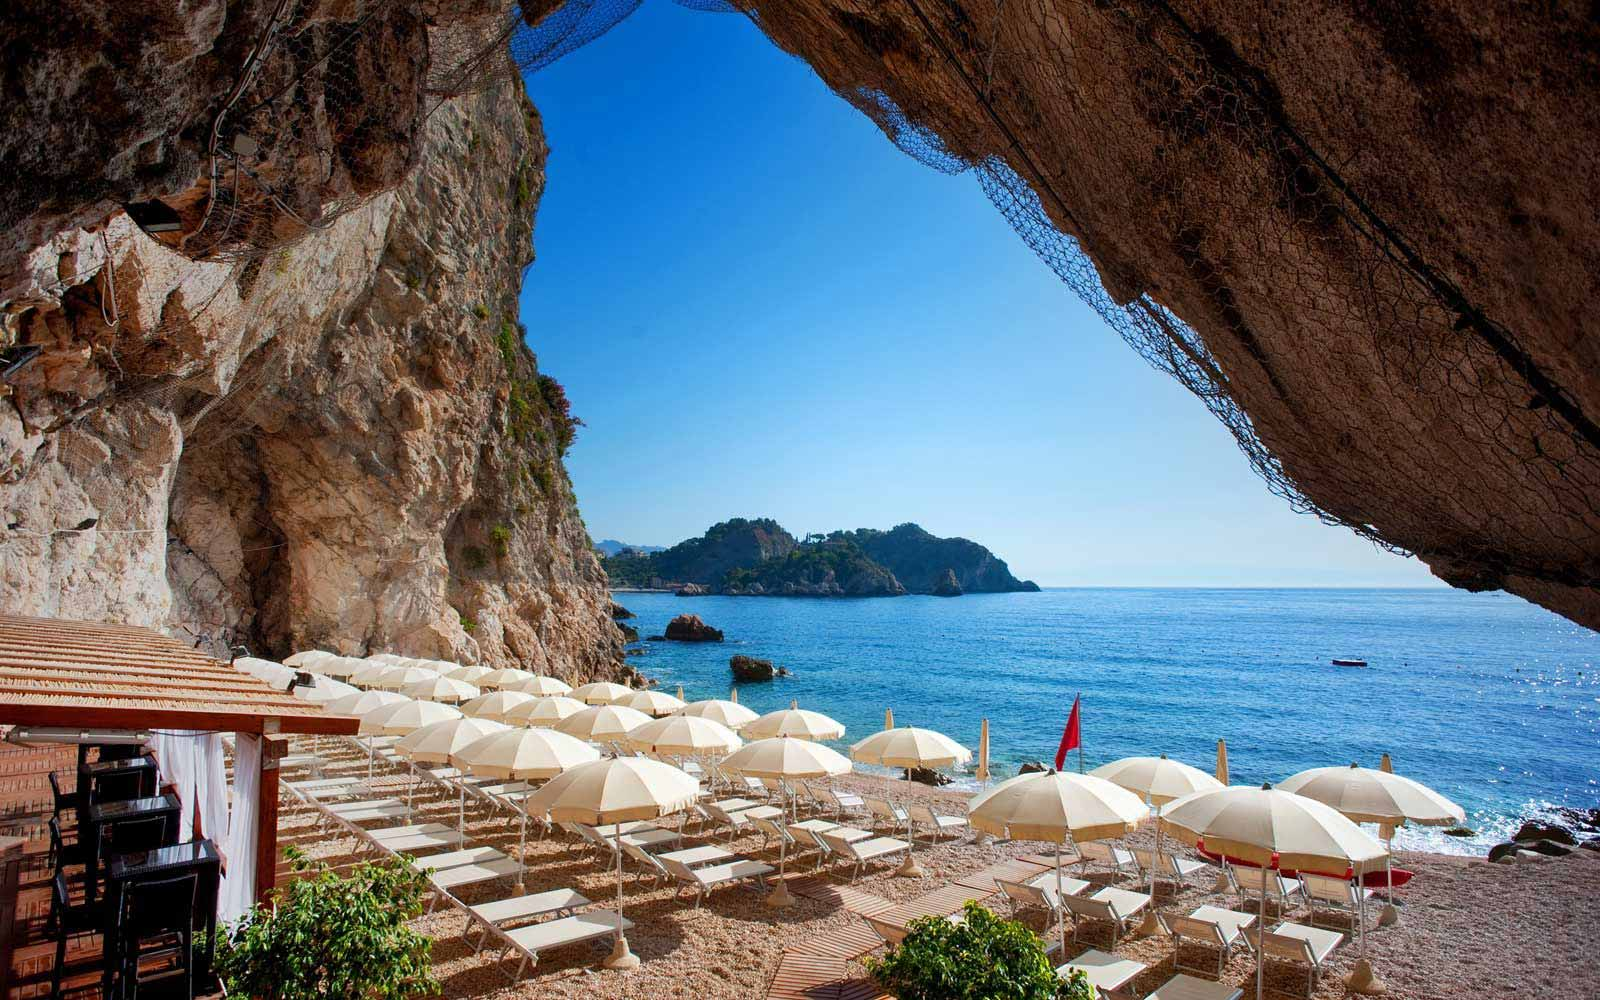 Beach cave at Atahotel Capotaormina